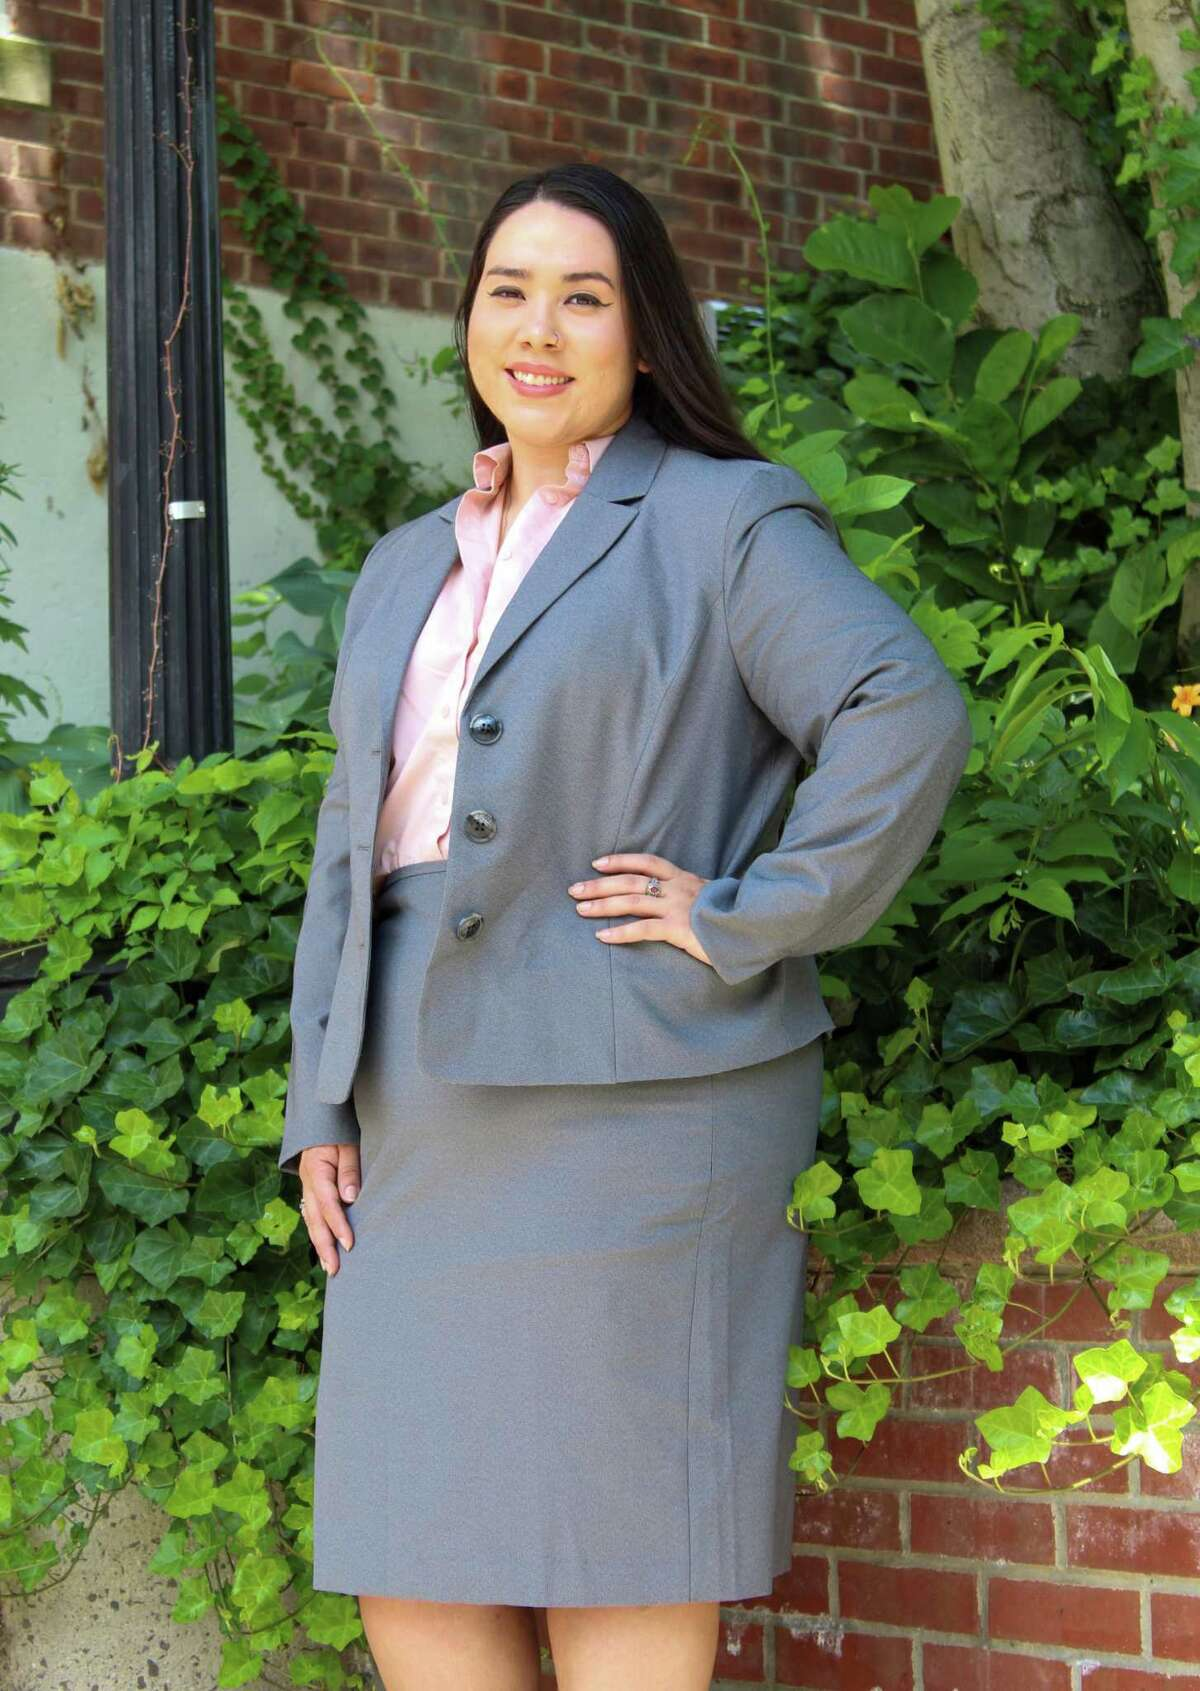 Cynthia Torres, Bridgeport City Council candidate